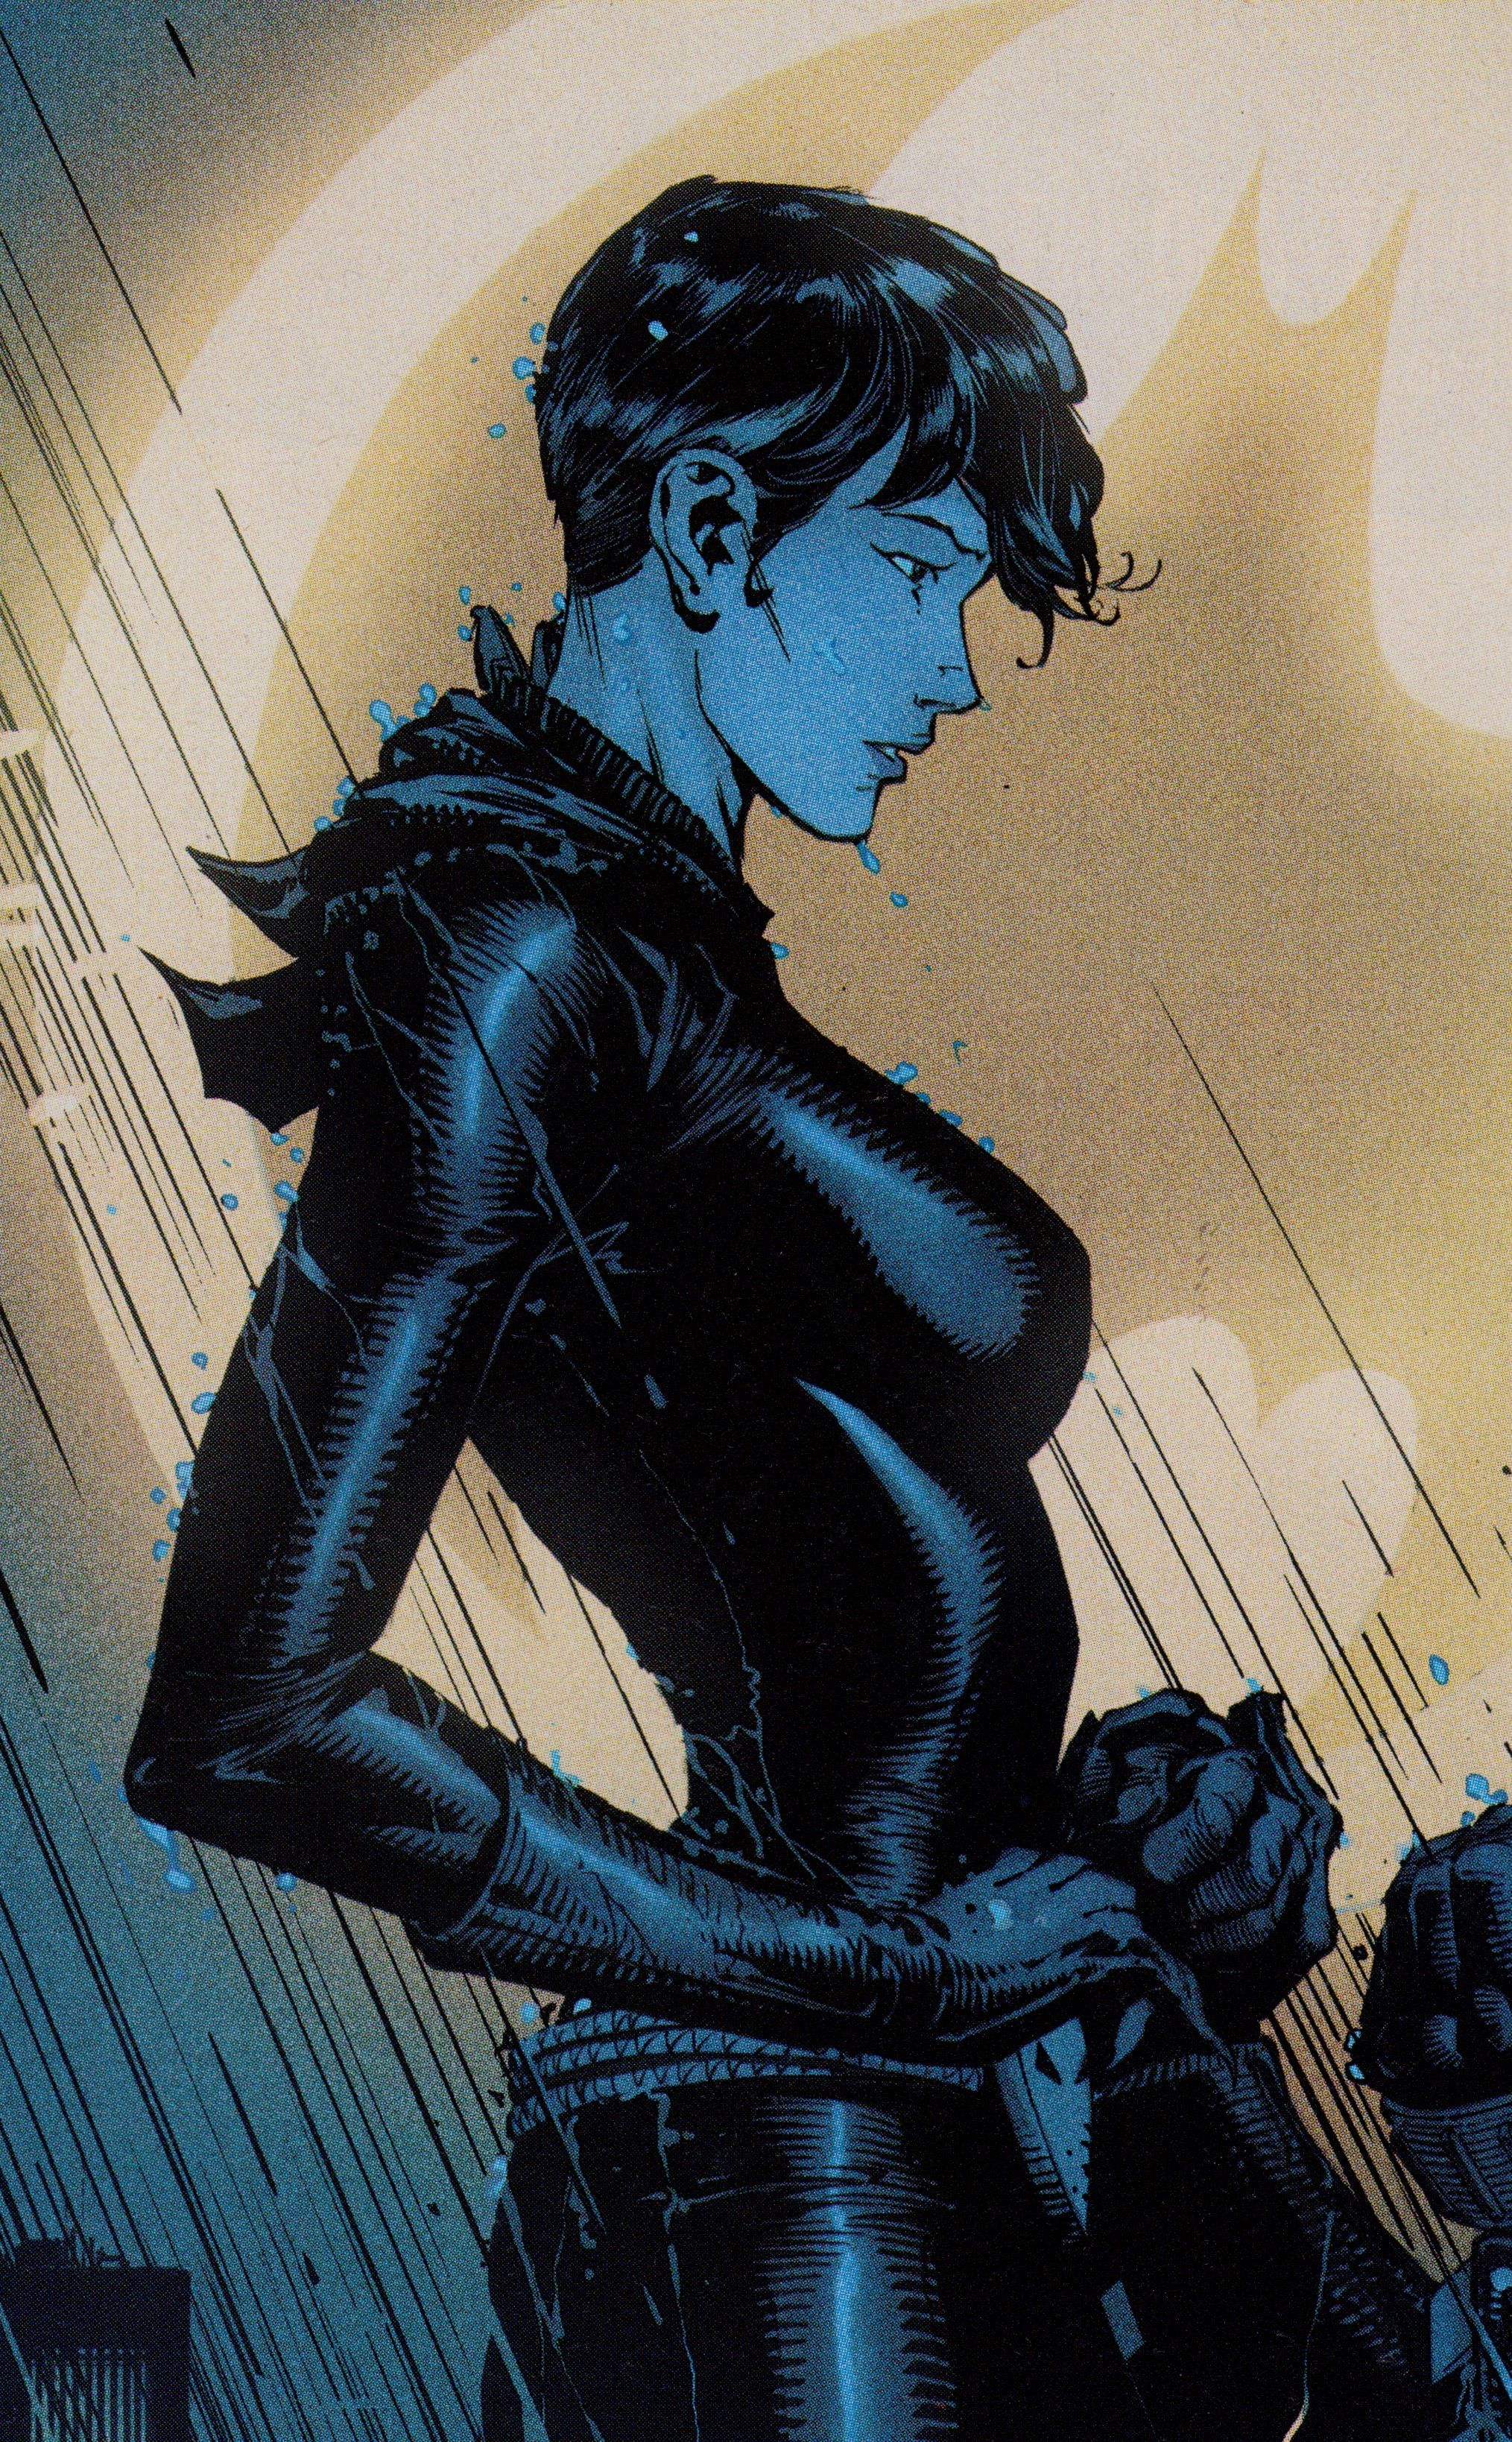 Pin by Viktor Aquino on Catwoman Catwoman, Fan art, Sci fi